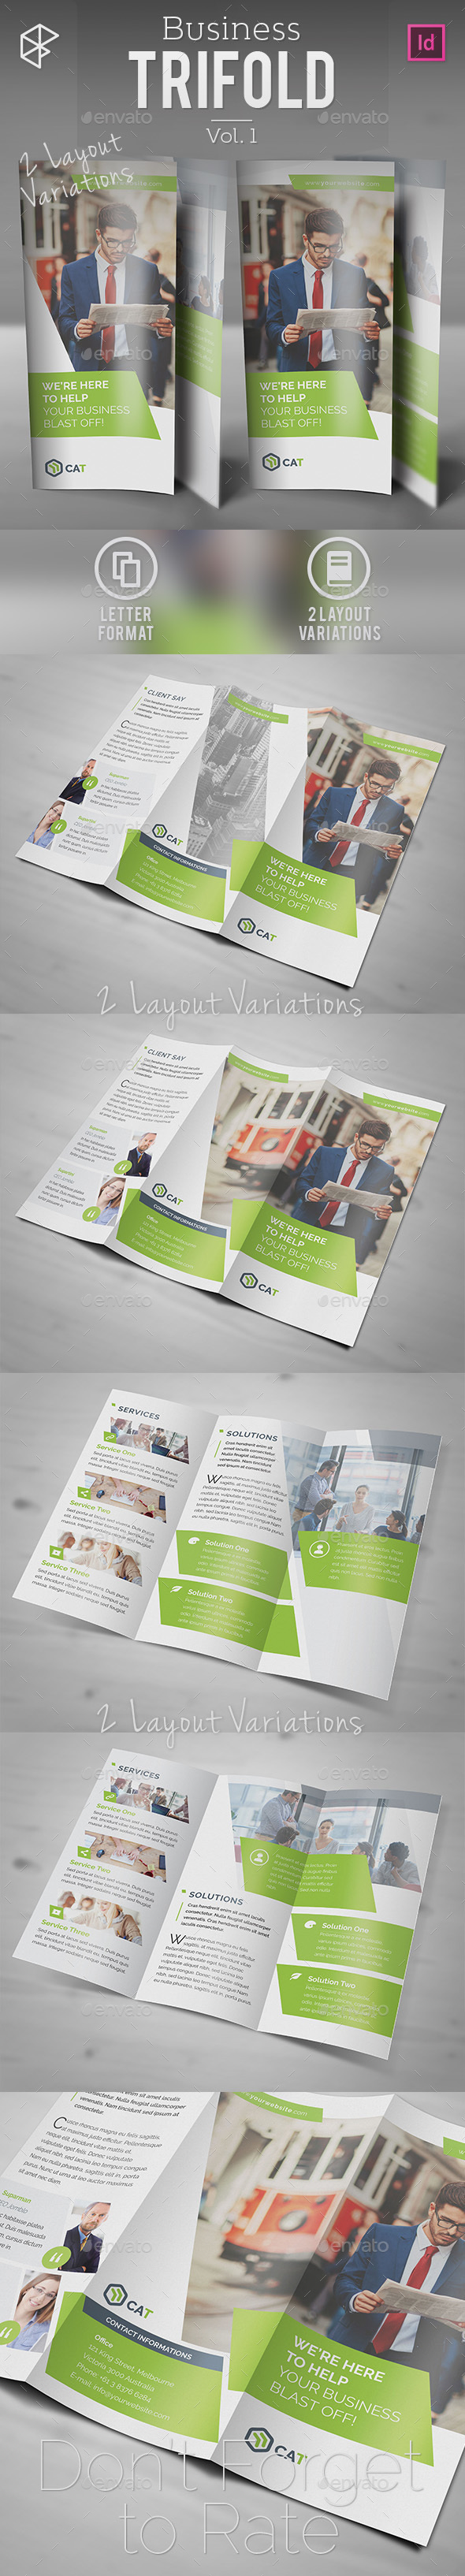 Business Trifold Vol. 1 - Corporate Brochures